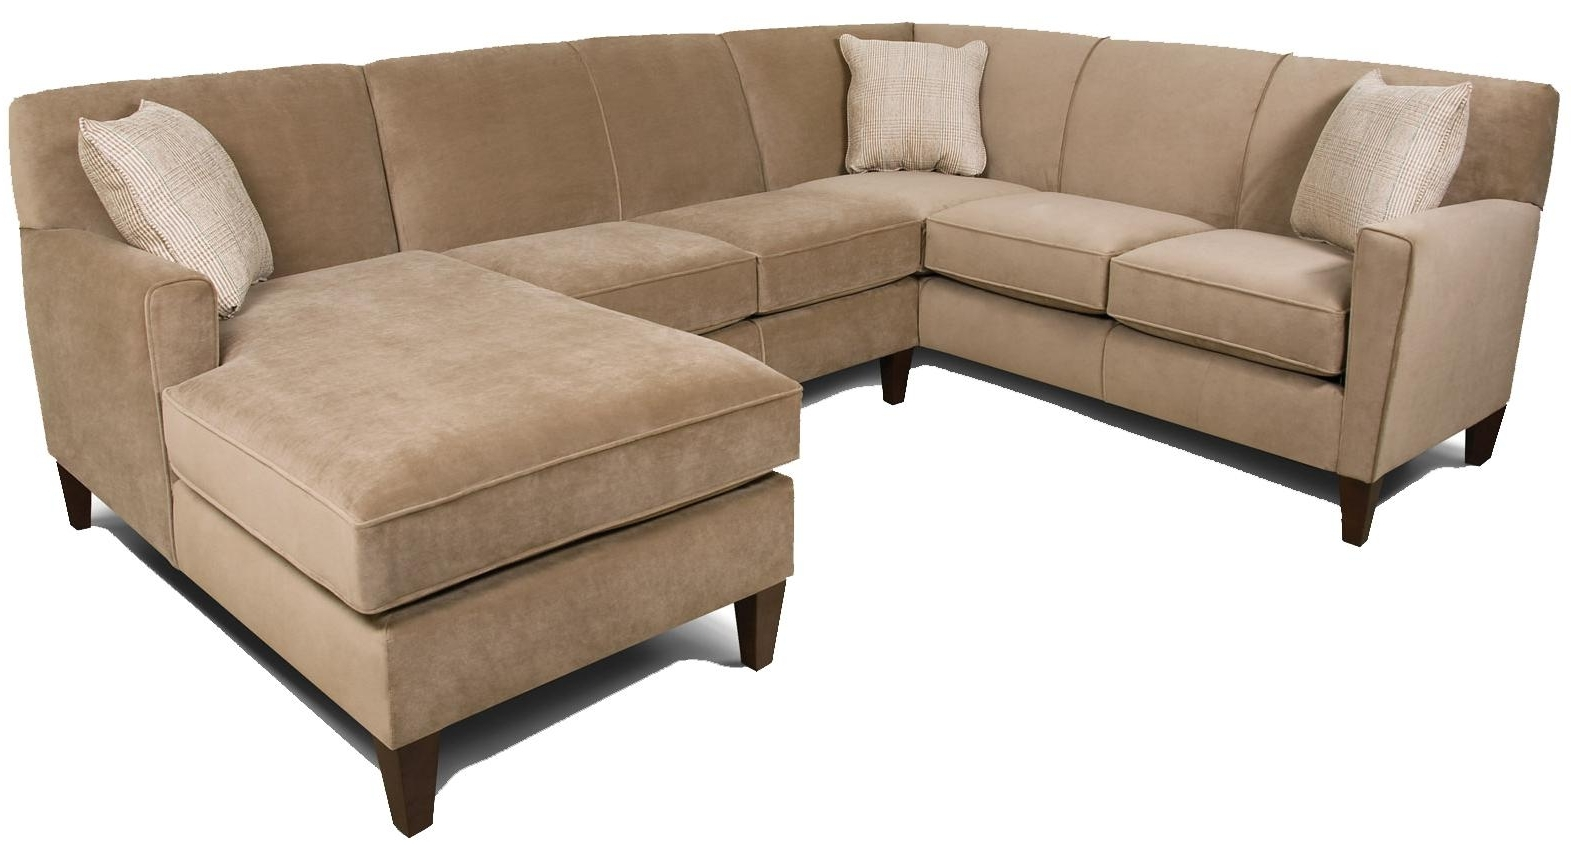 England Sectional Sofas Regarding 2017 England Collegedale Contemporary 3 Piece Sectional Sofa With Raf (View 9 of 15)